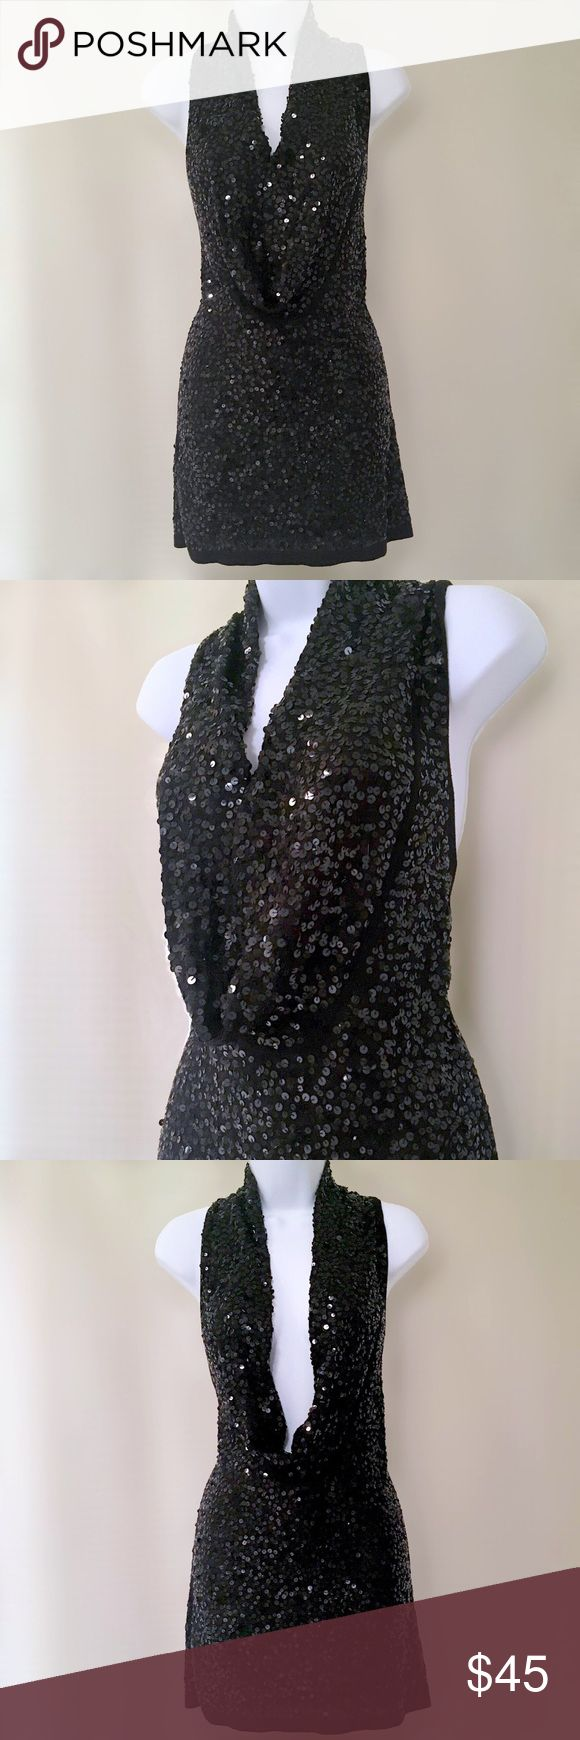 🎈Host Pick🎈BCBGMaxazaria Black Sequin Mini Dress Like new - worn once! Beautiful form fitting black sequined minidress from BCBGMaxazaria HOT plunging neckline and front cowl neck can be worn closed - or open! Material is silk blend, soft with stretch Chest is 16 inches flat and unstretched (measured from backside of dress) Length is 30 inches from shoulder seam to hem Neckline drop is approx 12 inches from shoulder  Excellent condition with no signs of wear, BCBGMaxAzria Dresses Mini